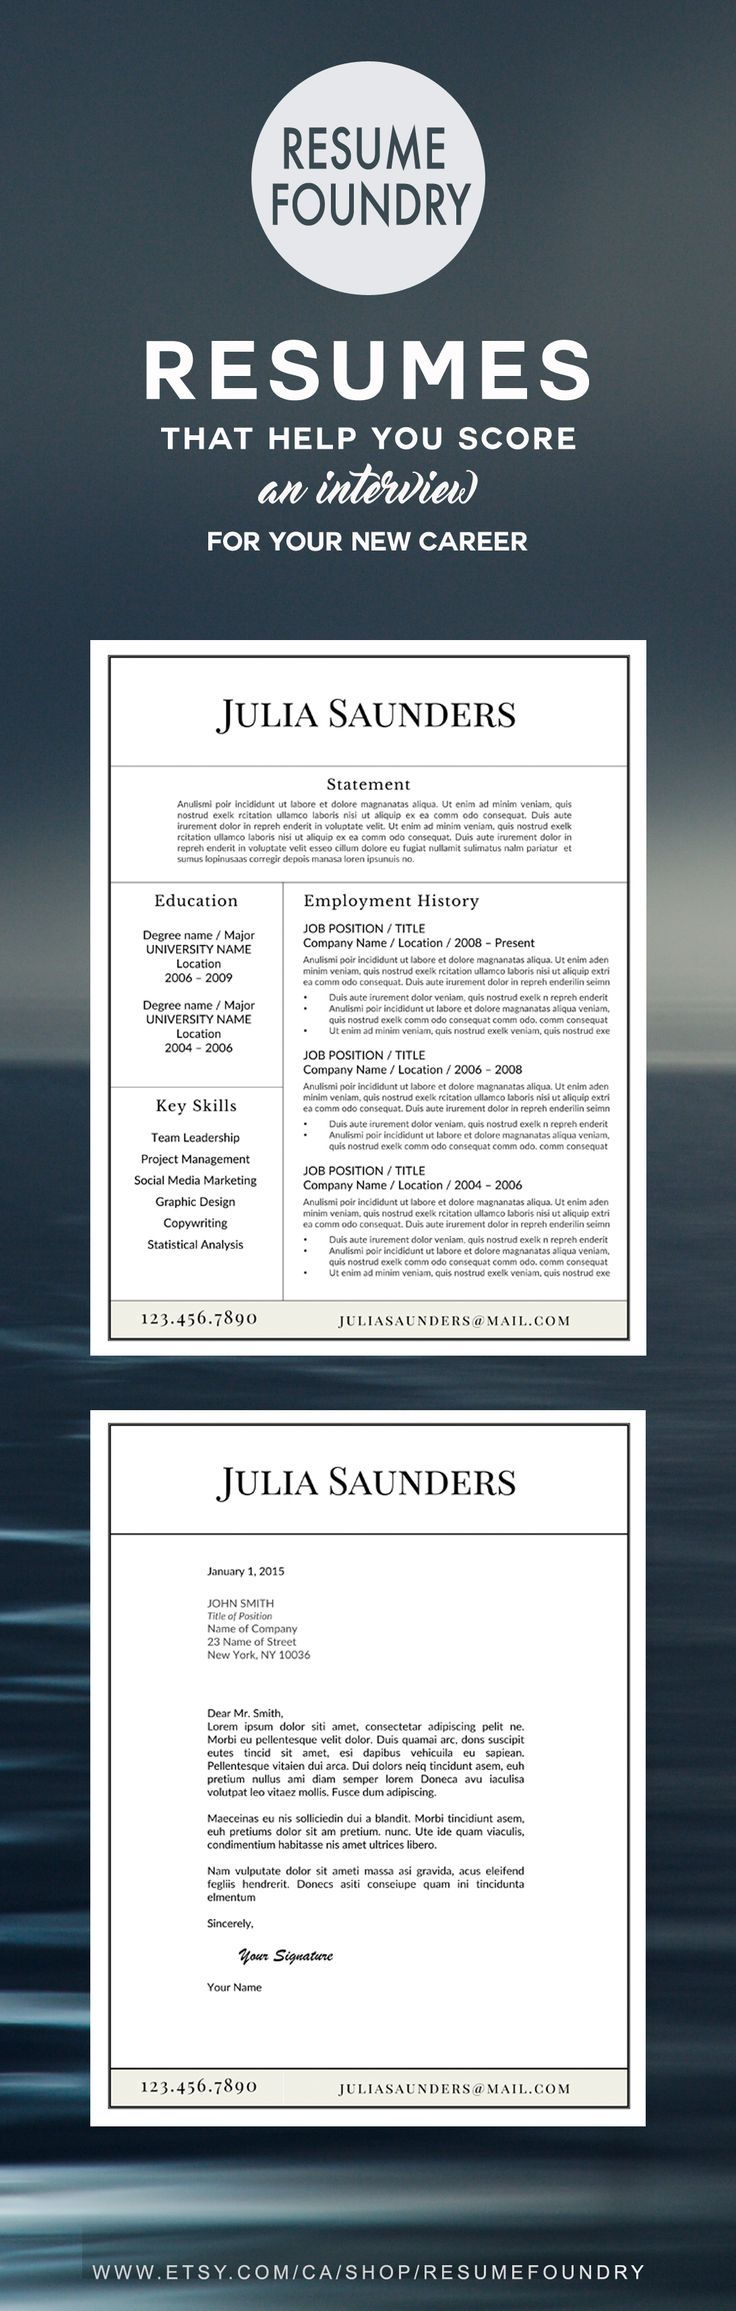 Classic Resume Template for Word, 13 Page Resume + Cover